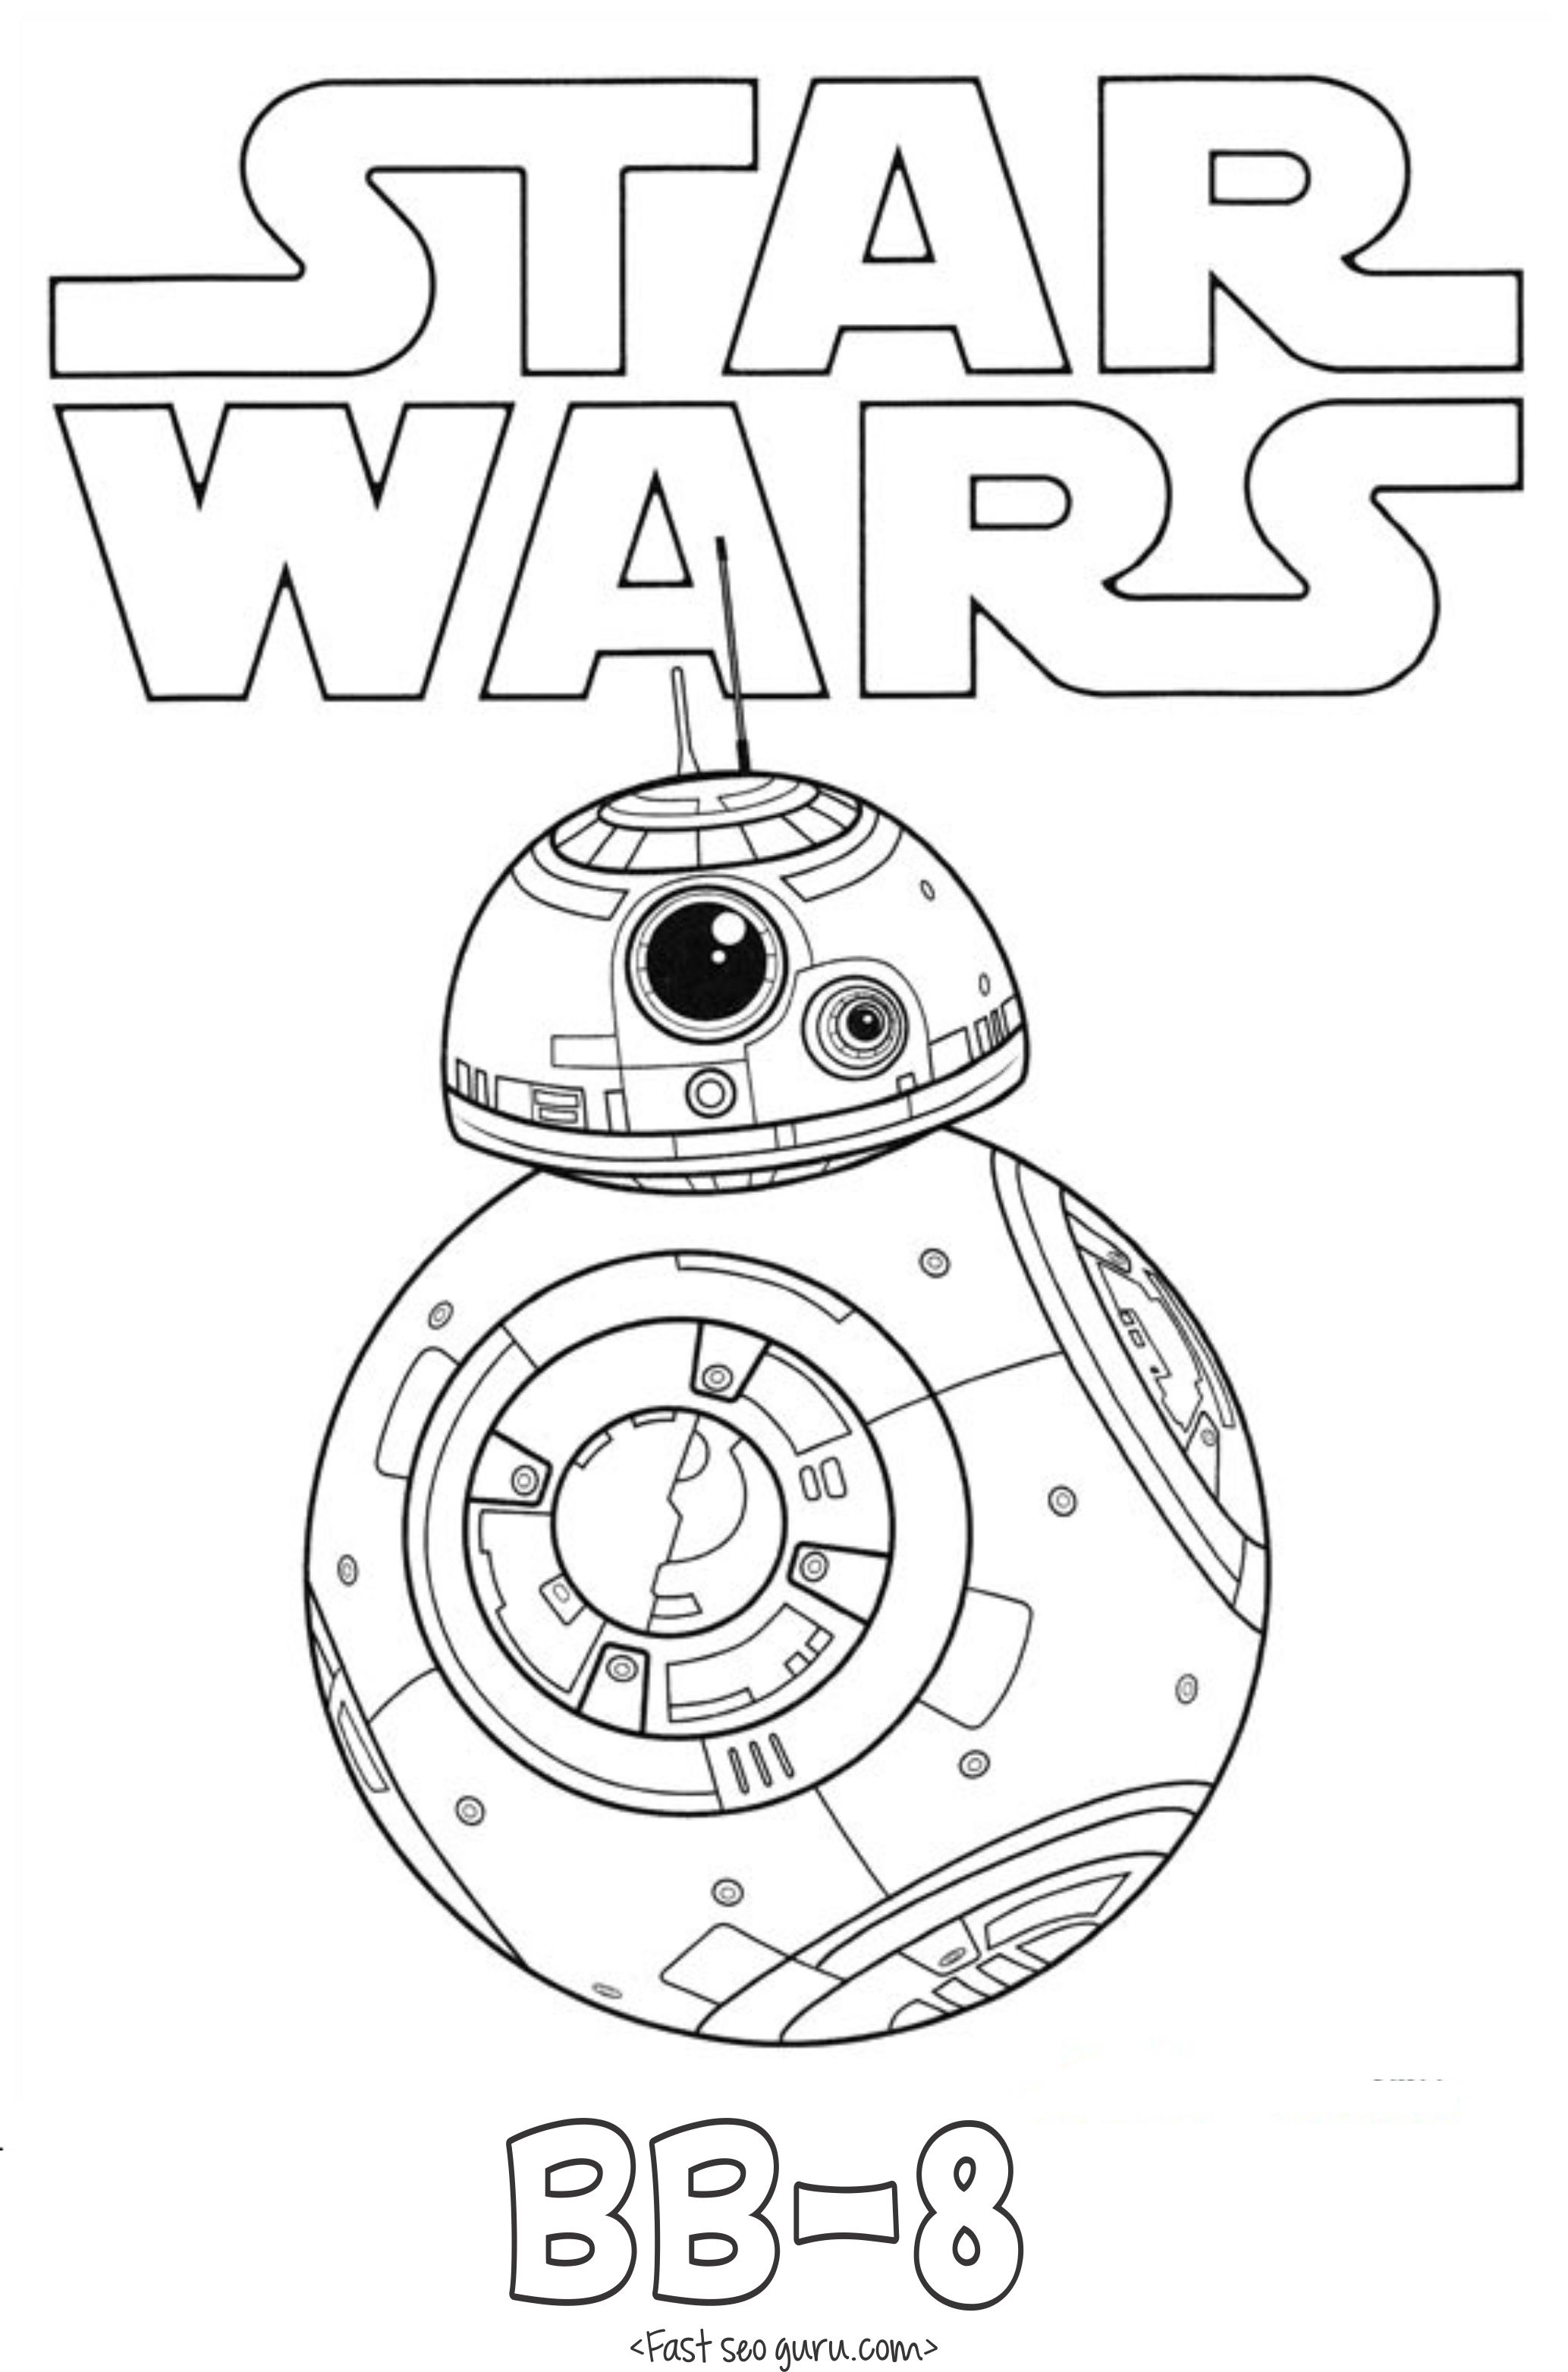 Star Wars The Force Awakens Bb 8 Coloring Pages Star Wars